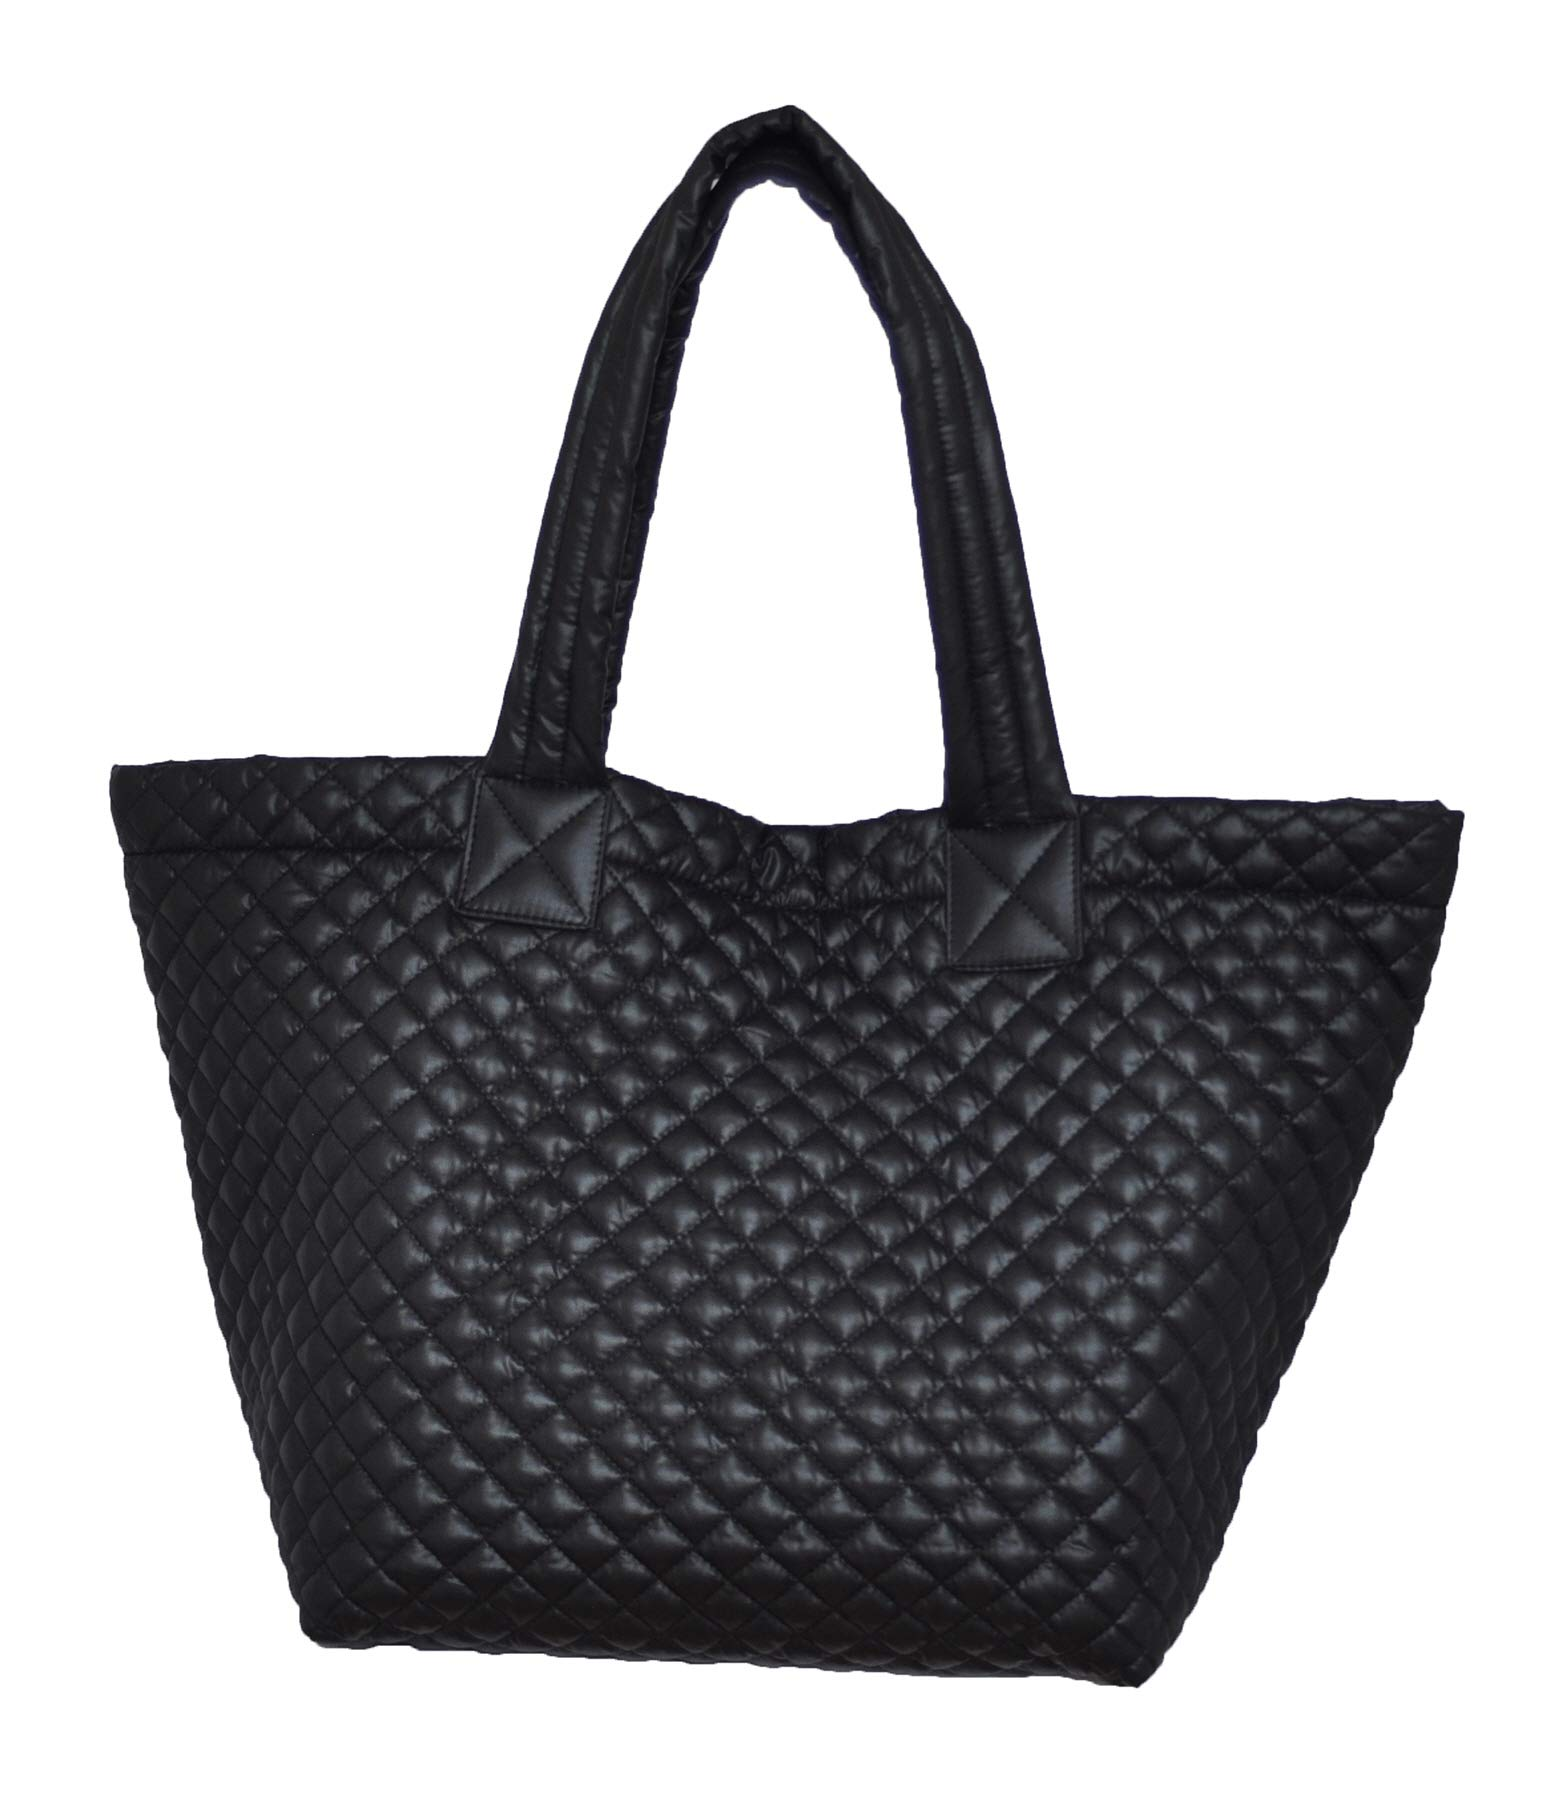 ClaraNY Comfortable Light weight Quilted Tote bag with Pouch water repellent Black